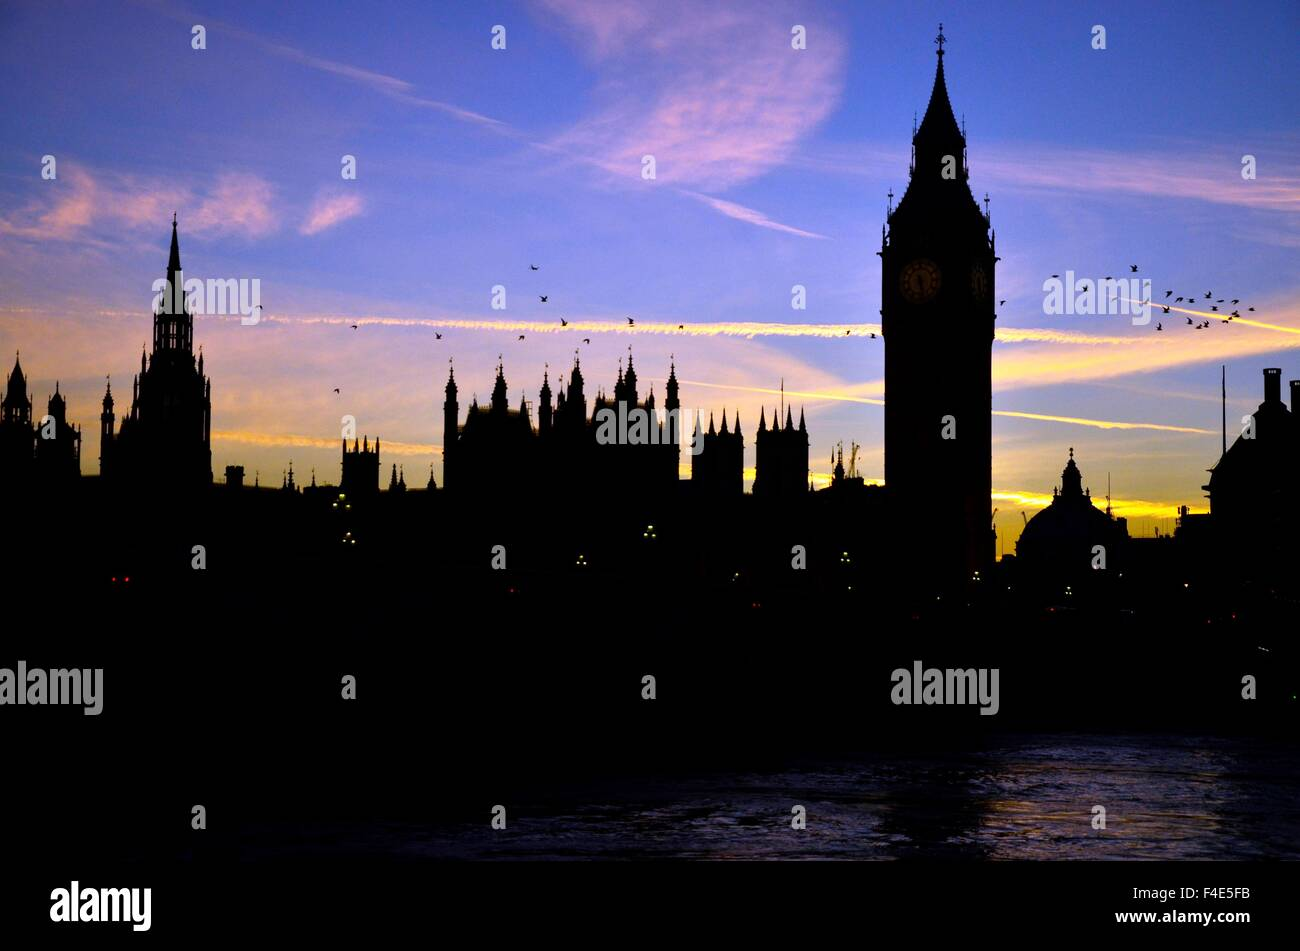 Houses of Parliament at Sunset, Westminster, London, England, UK - Stock Image